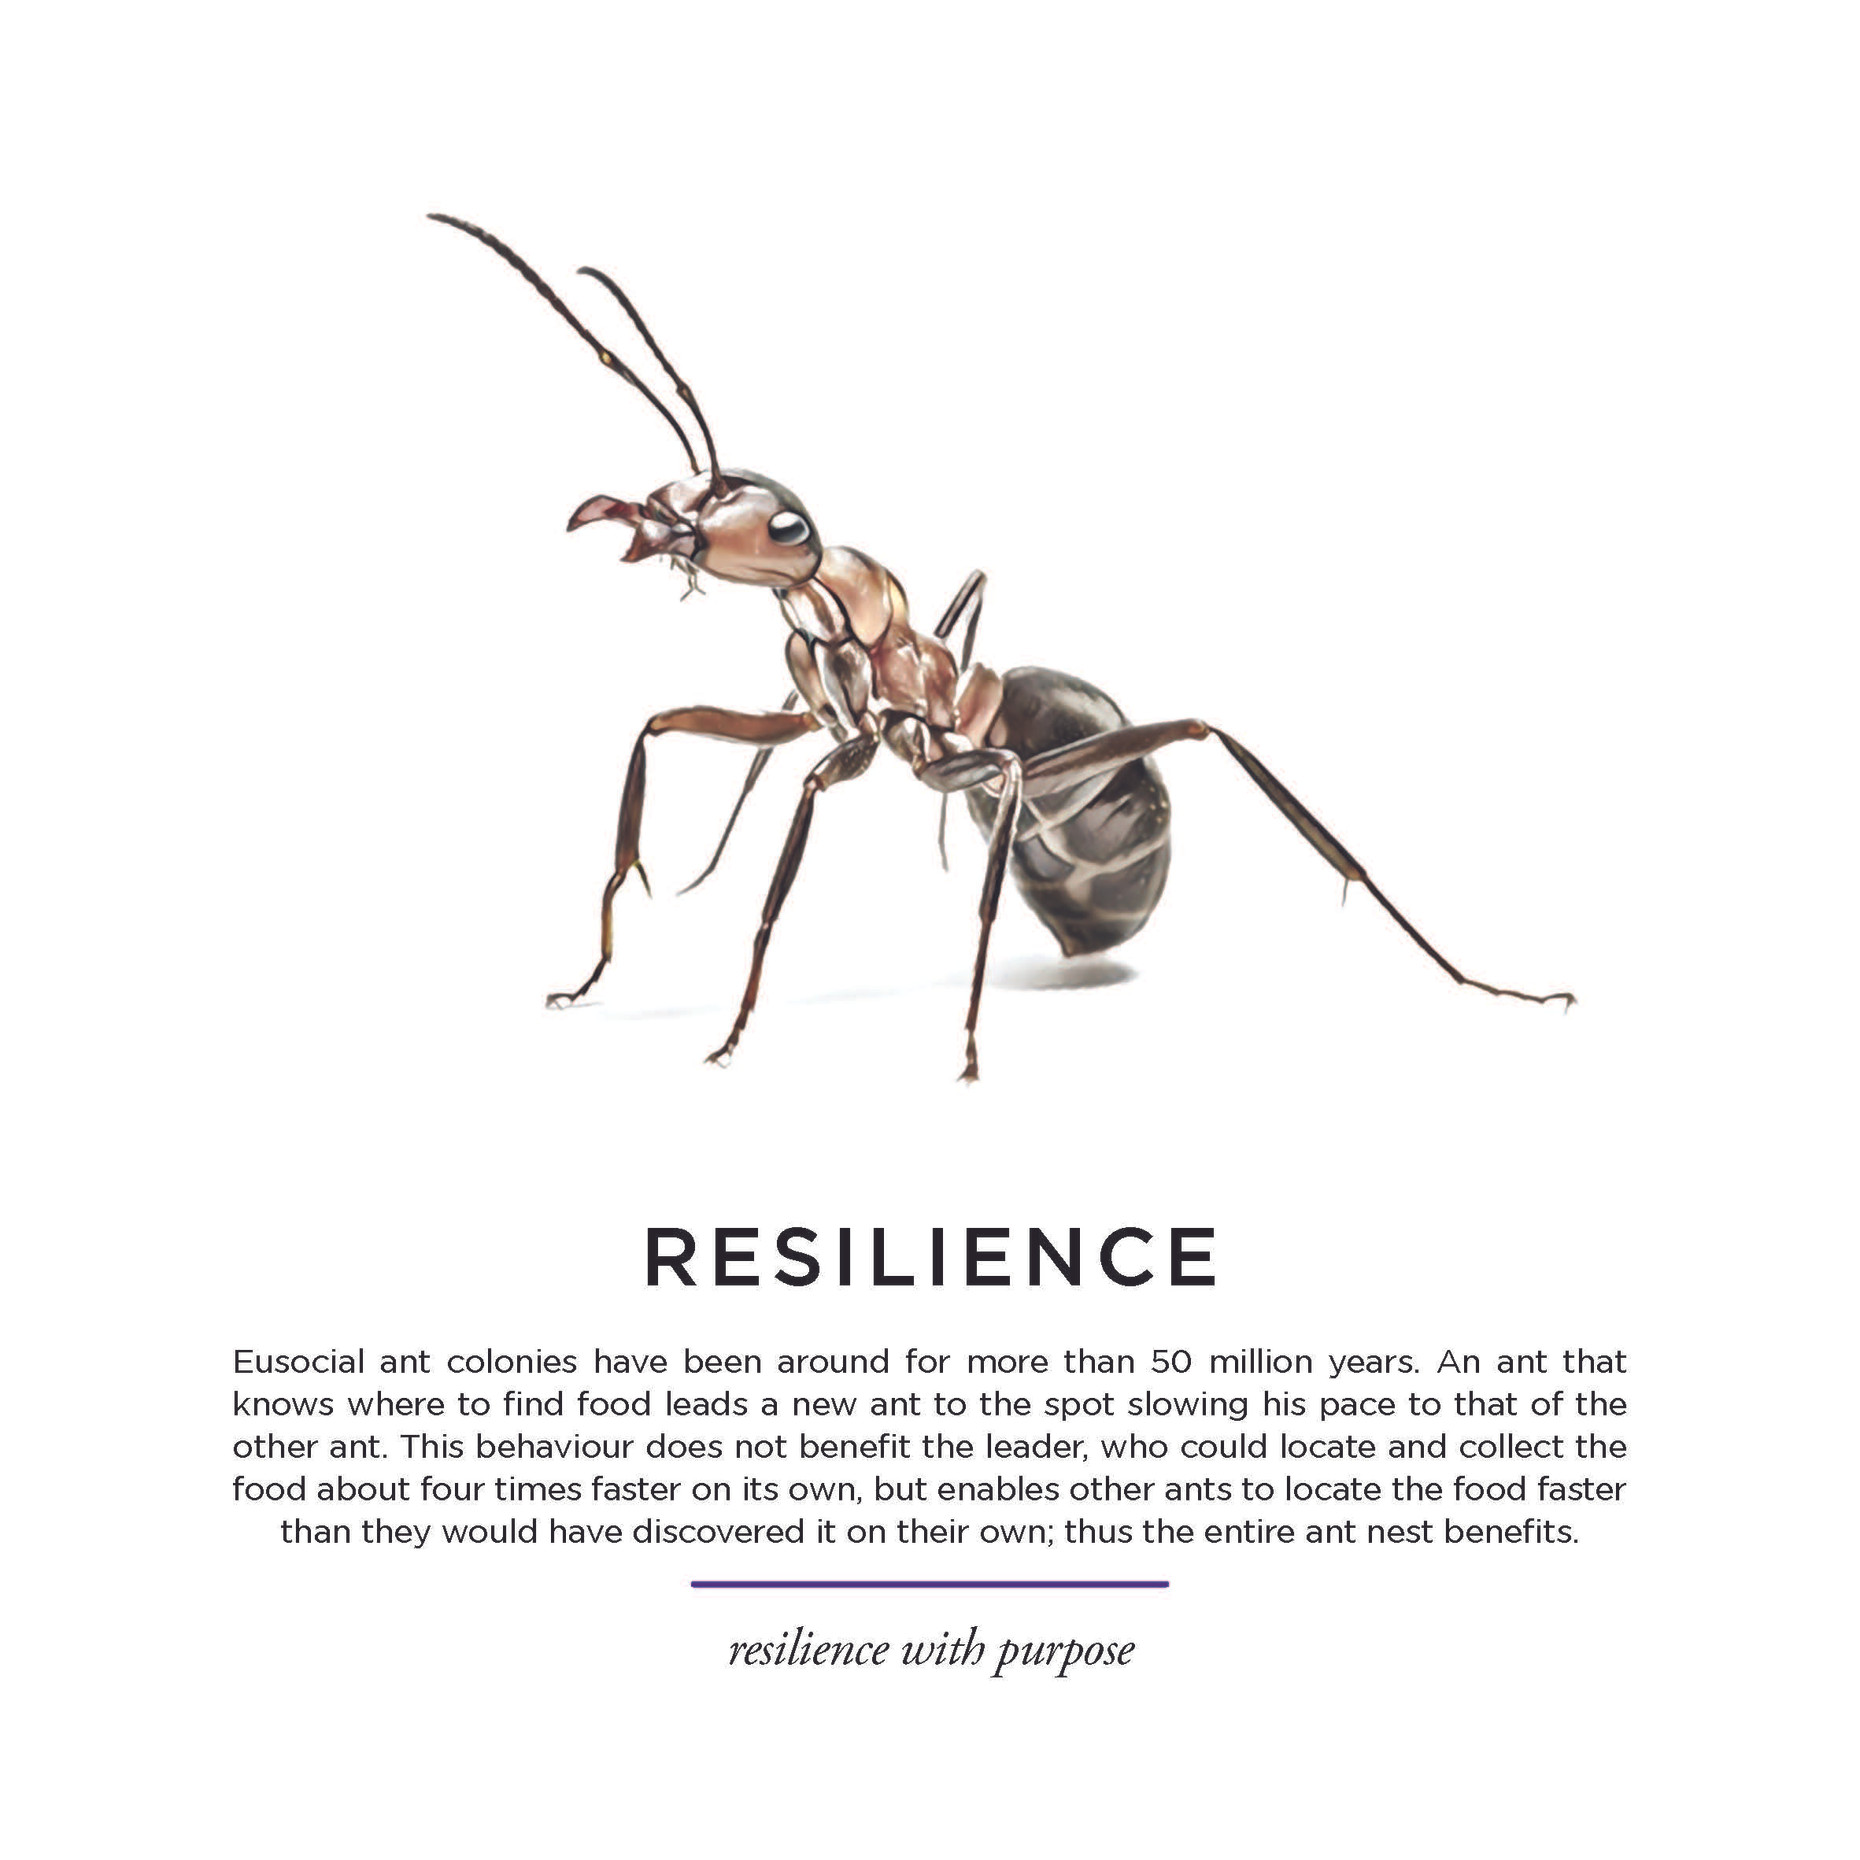 Gryphon_Miscelany-05_Resilience.jpg